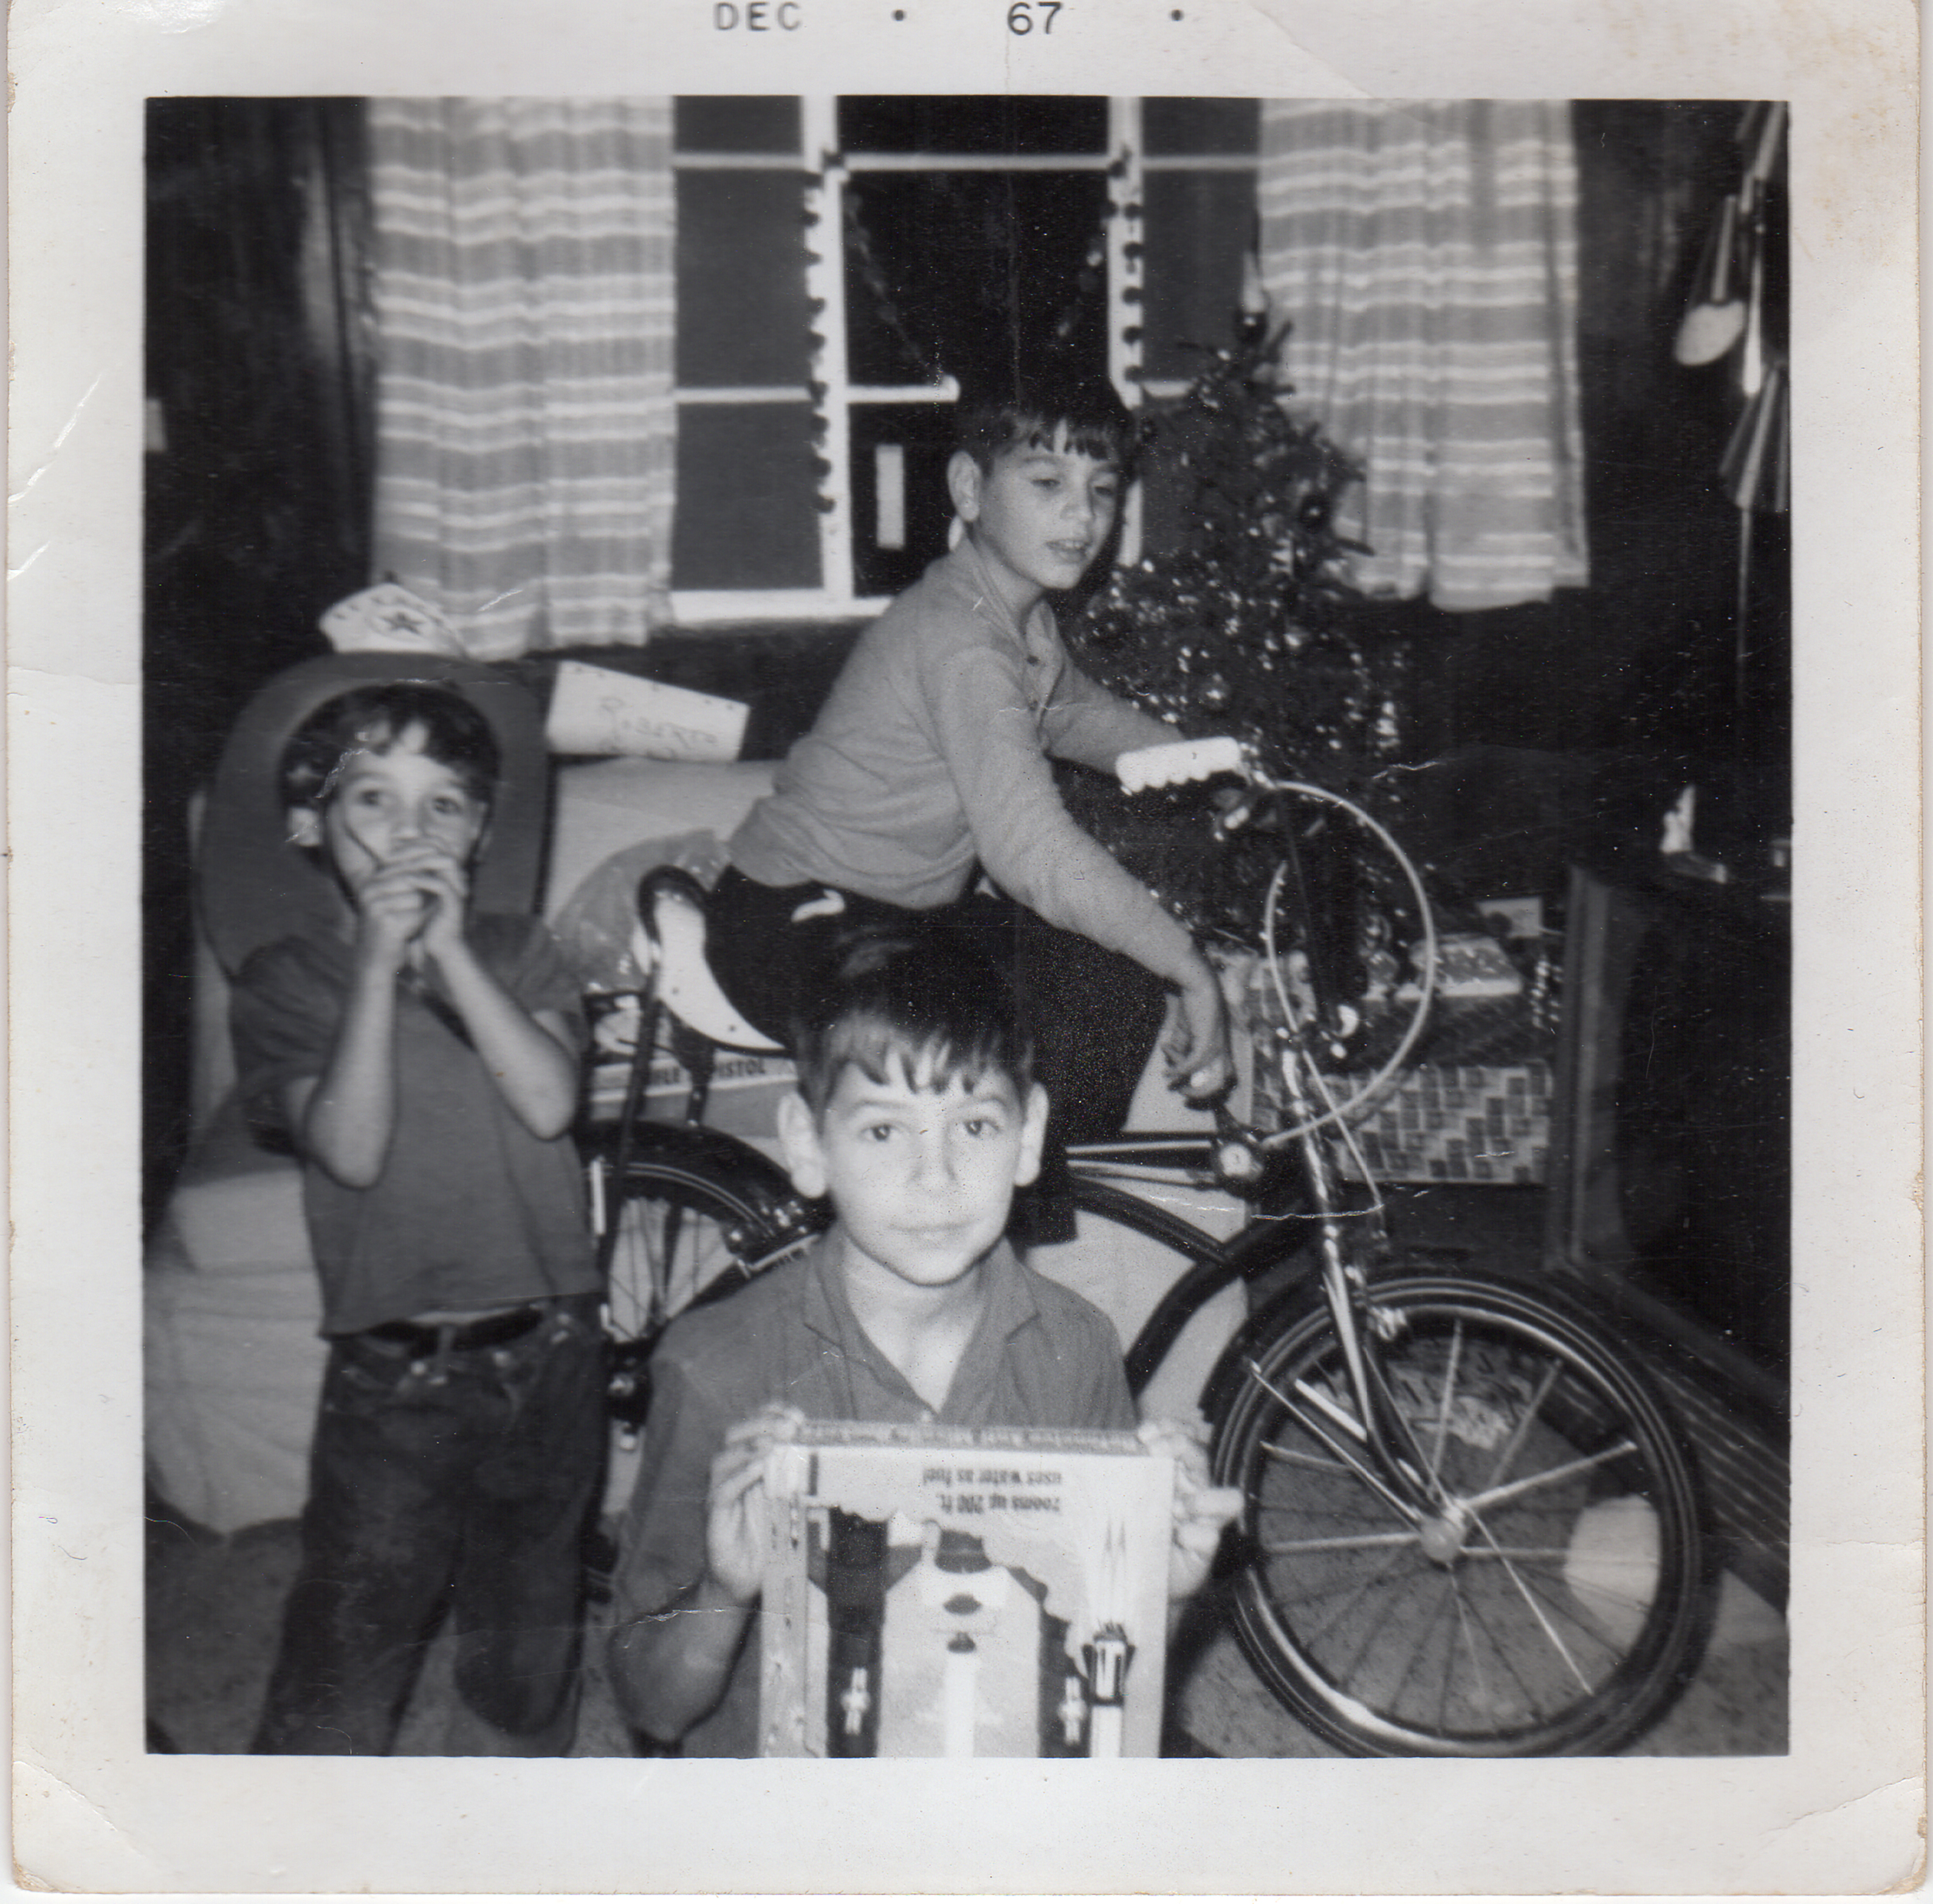 While we came to the US in 1965, it wasn't until 1967 that we could even be in a place to celebrate Christmas. This photo is taken in the home I grew up in. Me (in center bottom) with two of my brothers. Eddy on the left and Robert on the bike.